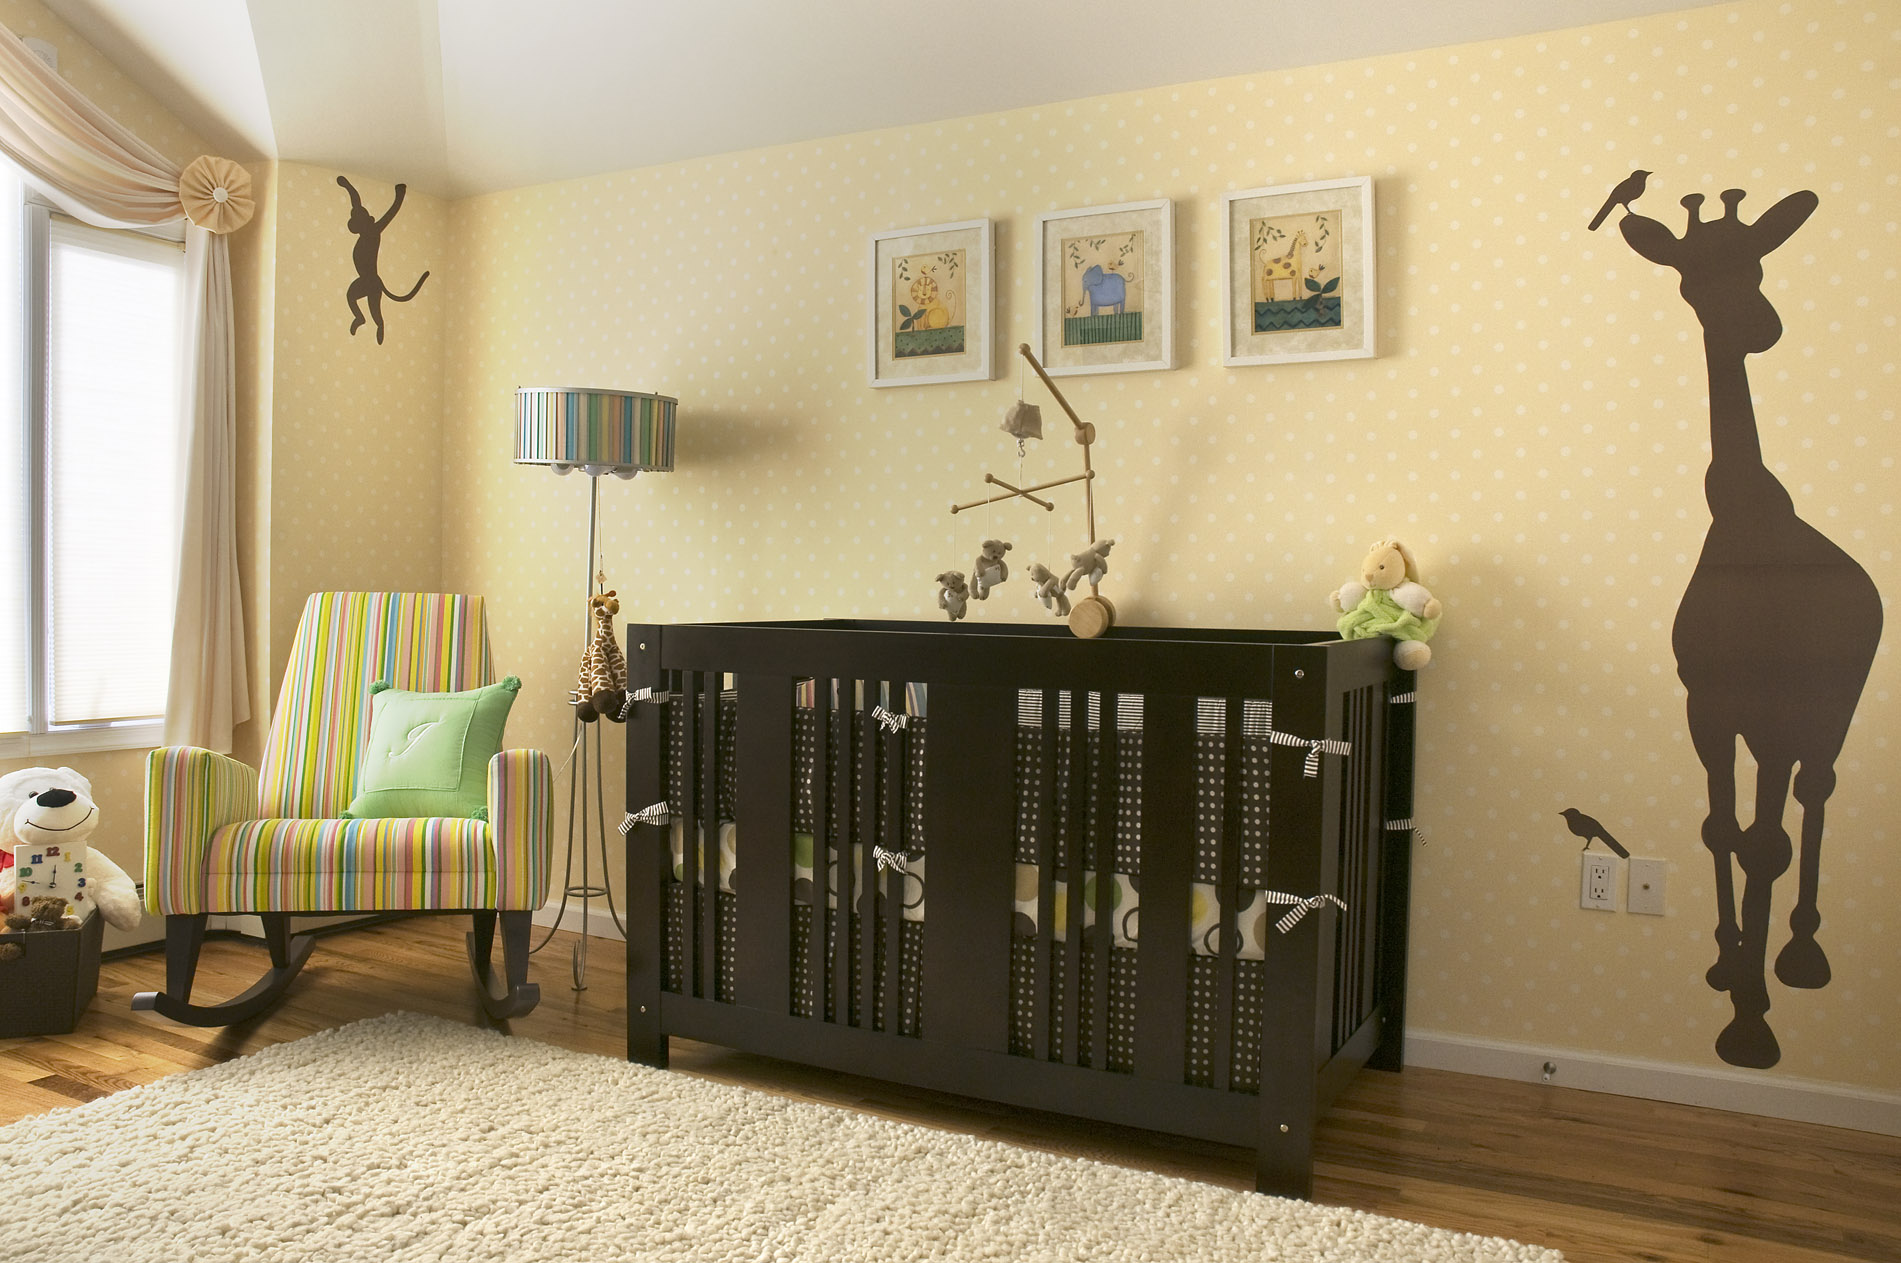 Lullaby Land – Nursery Decorating Ideas | Decorating Den Interiors ...